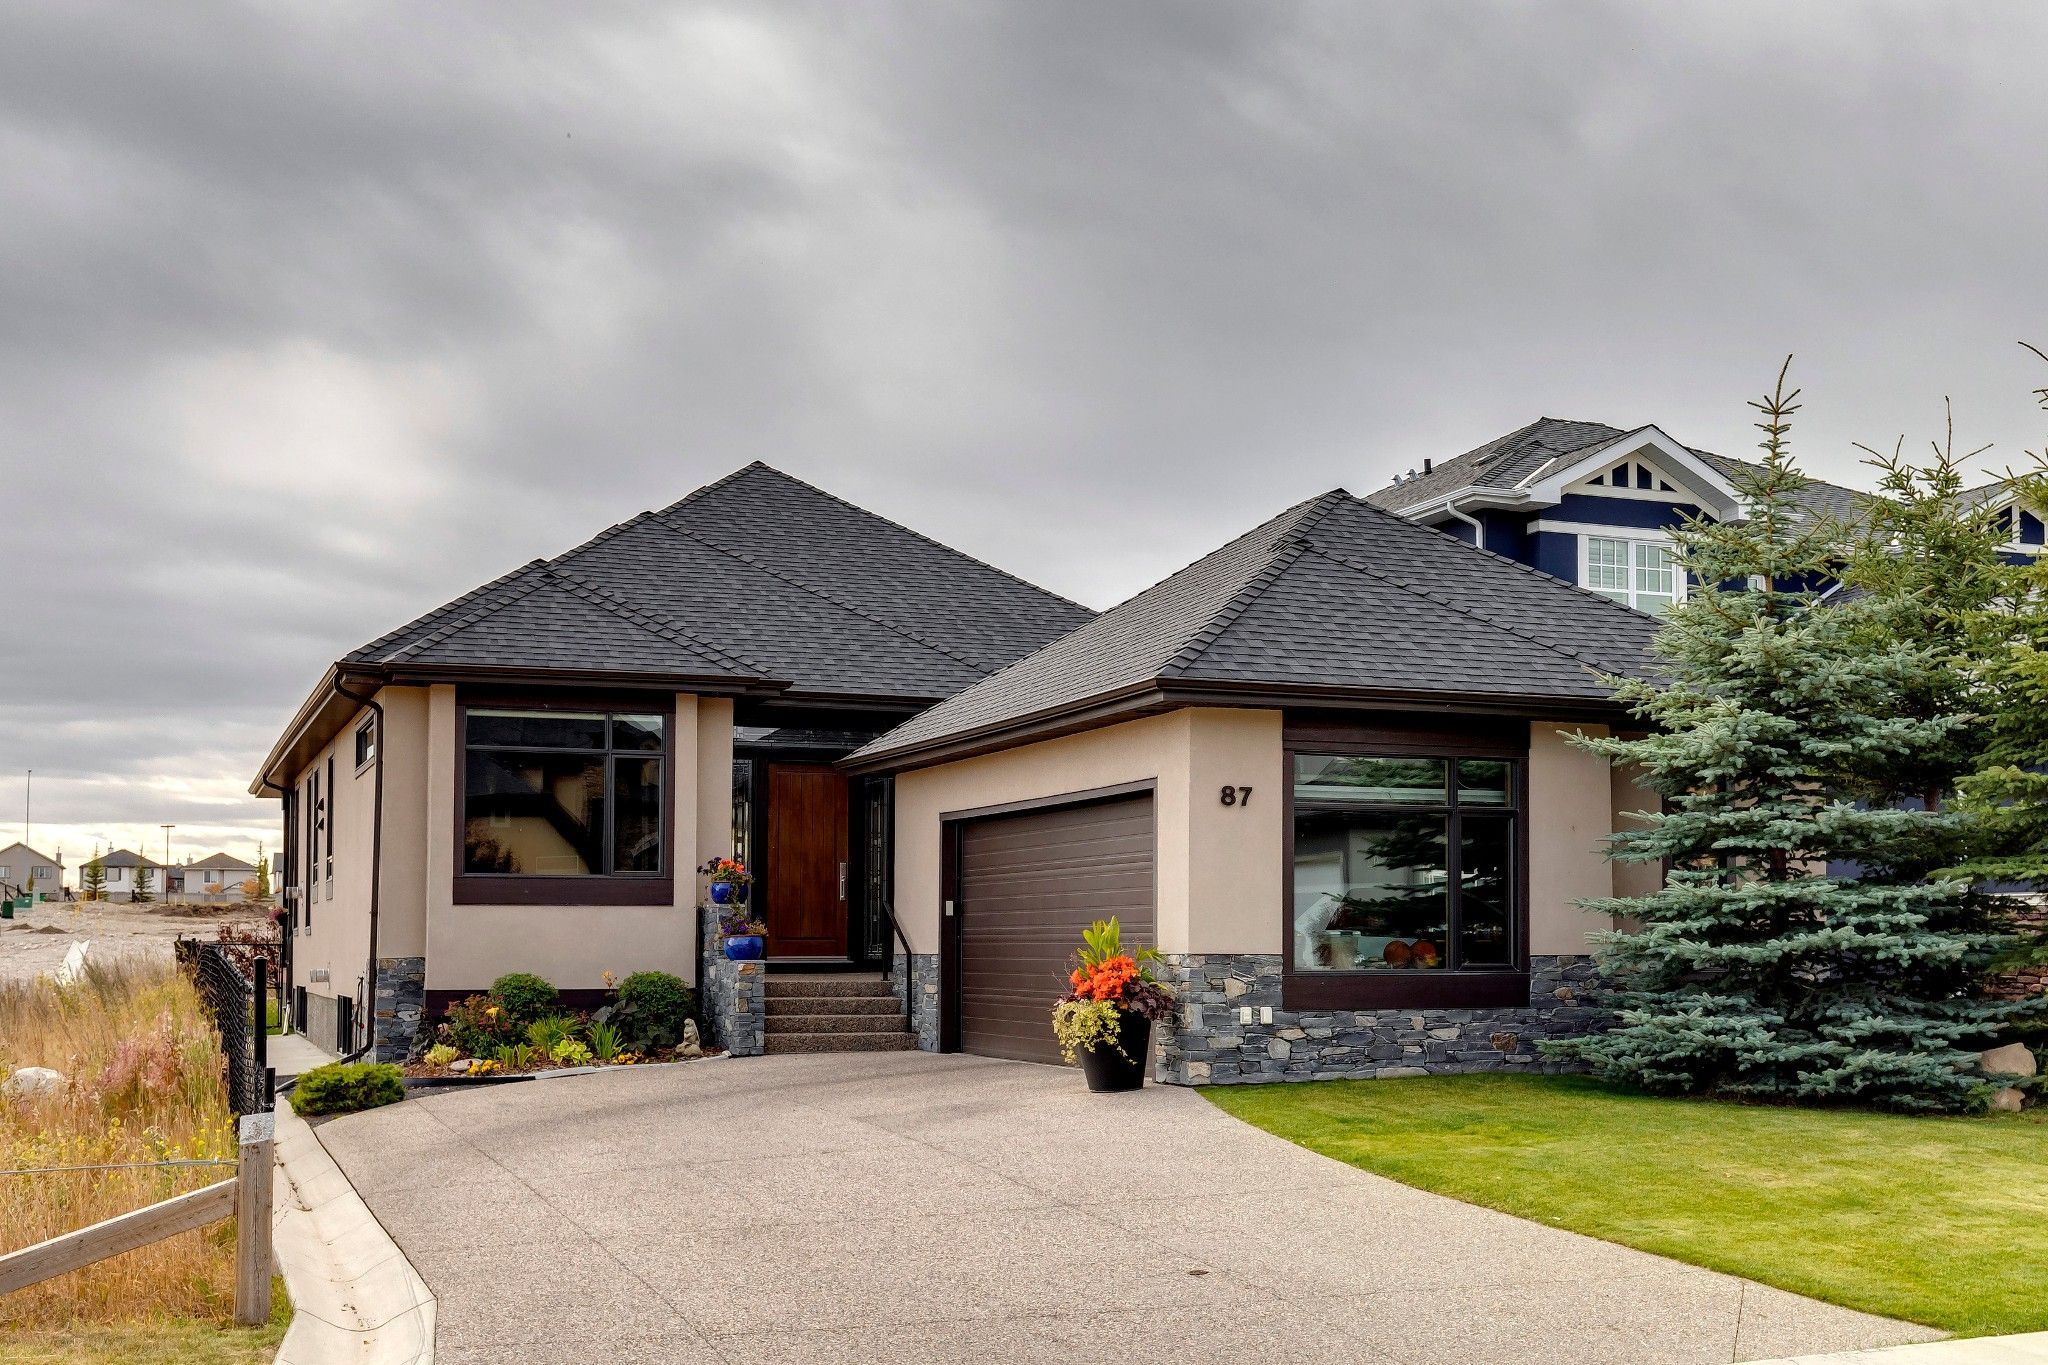 Main Photo: Calgary Luxury Home In Cougar Ridge SOLD As Exclusive, Off Market Property